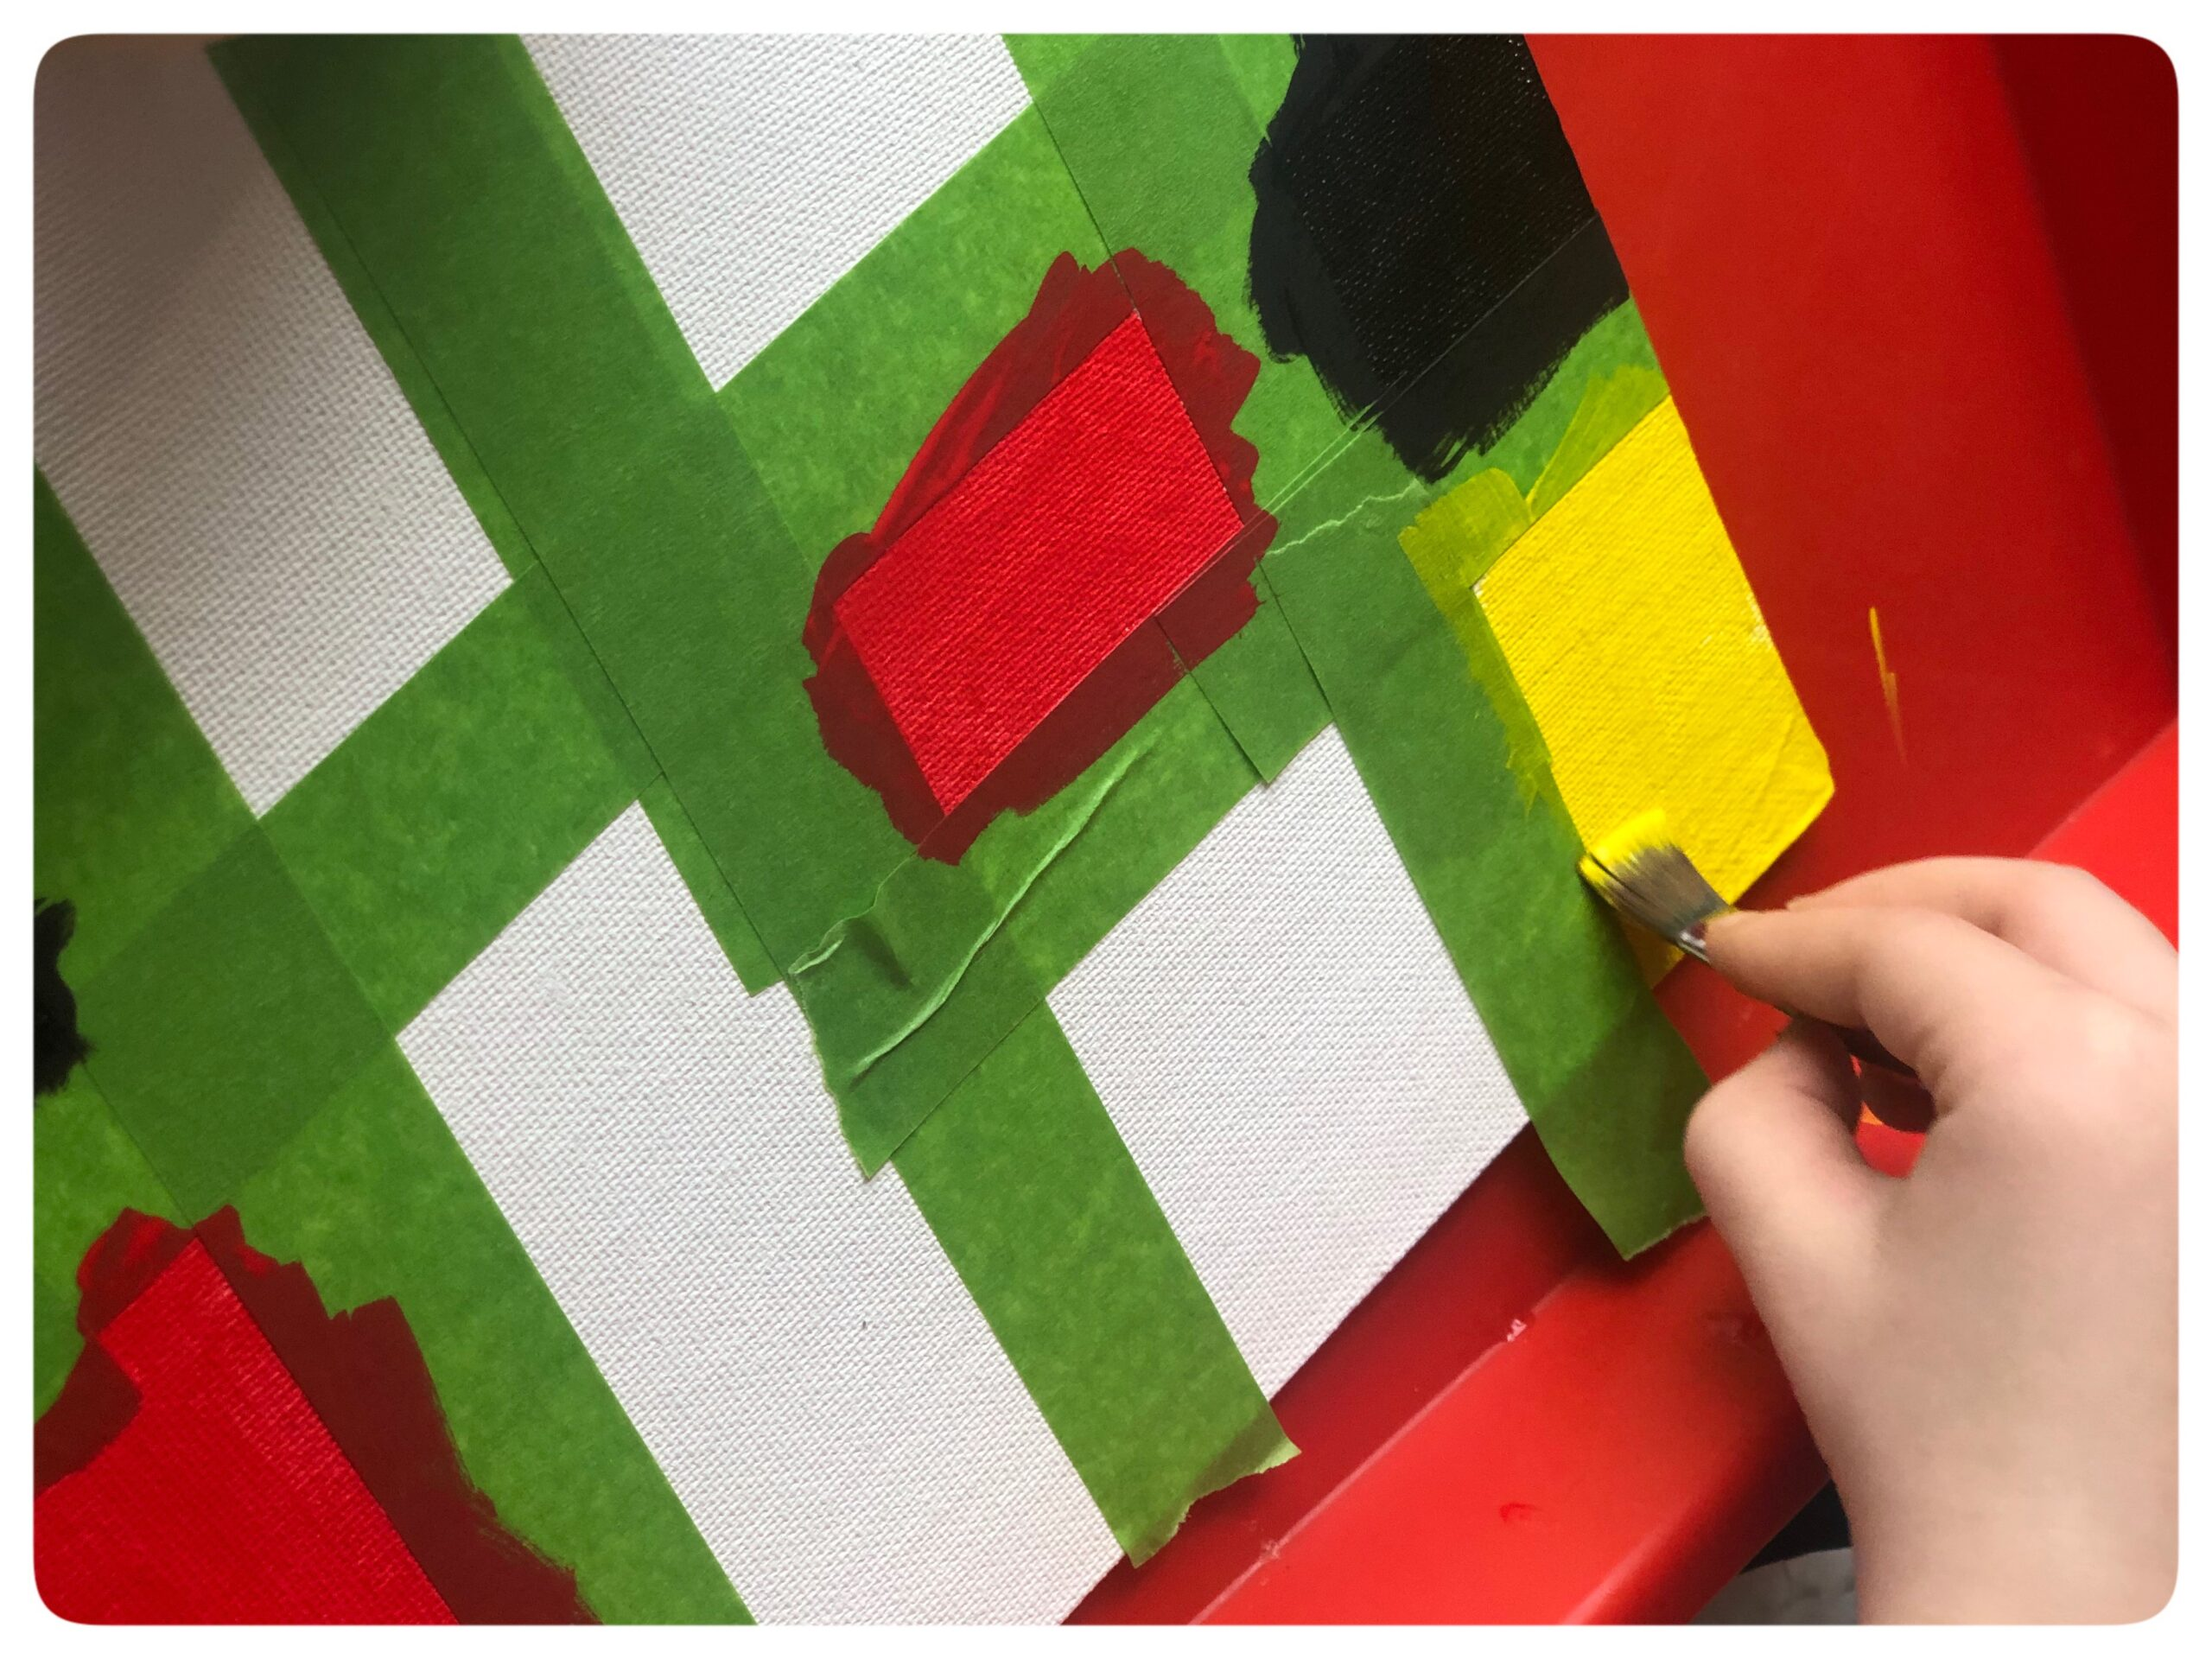 Creating ways to think about abstract art while learning about Piet Mondrian